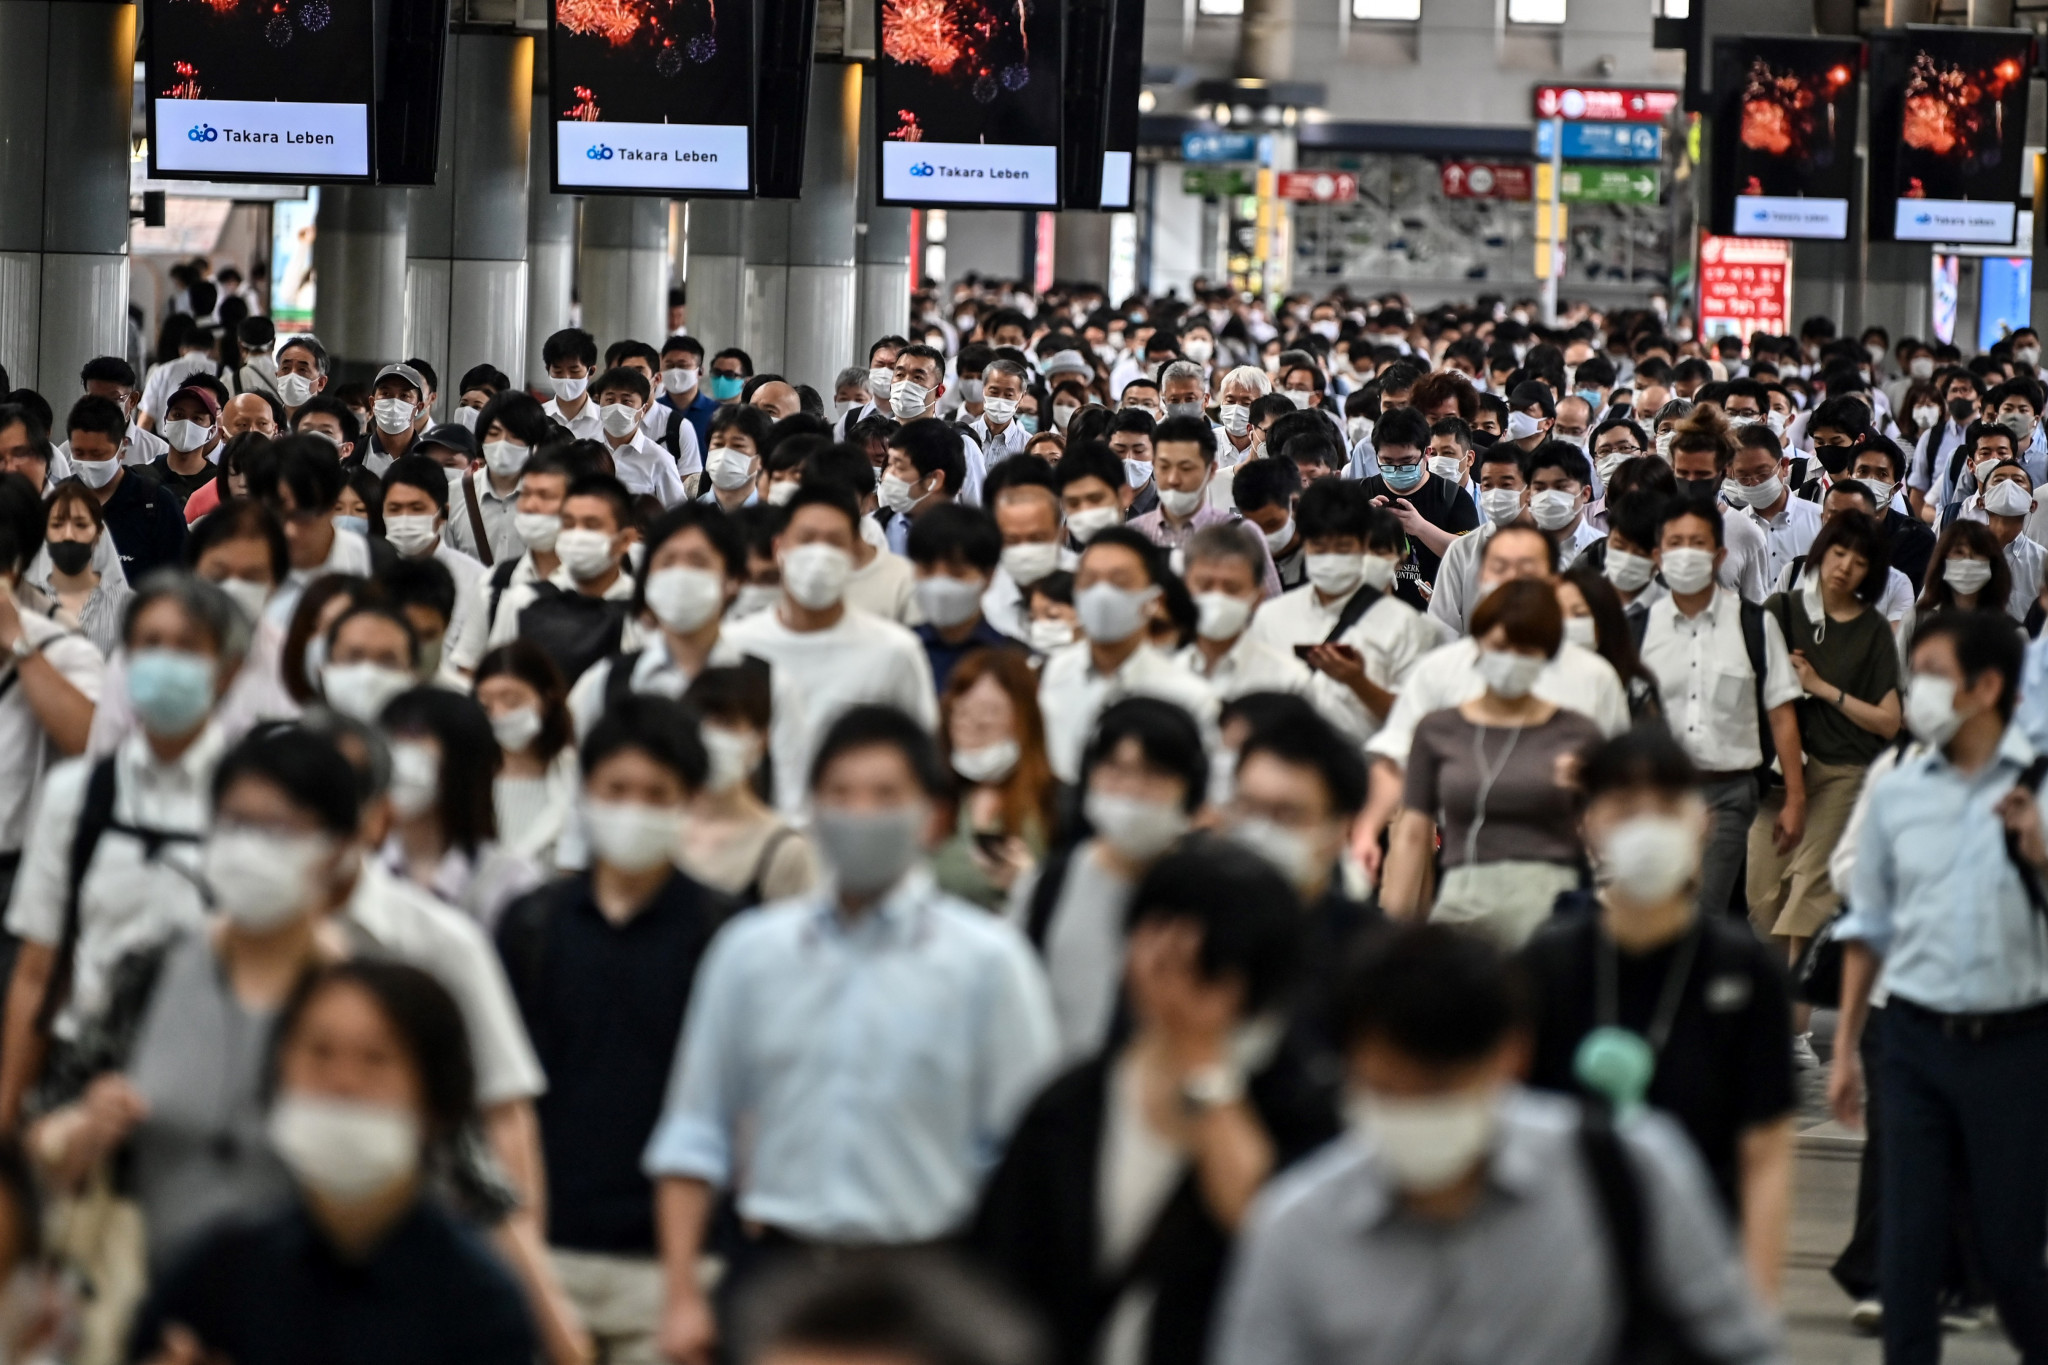 A recent rise in coronavirus cases has been reported in Japan ©Getty Images